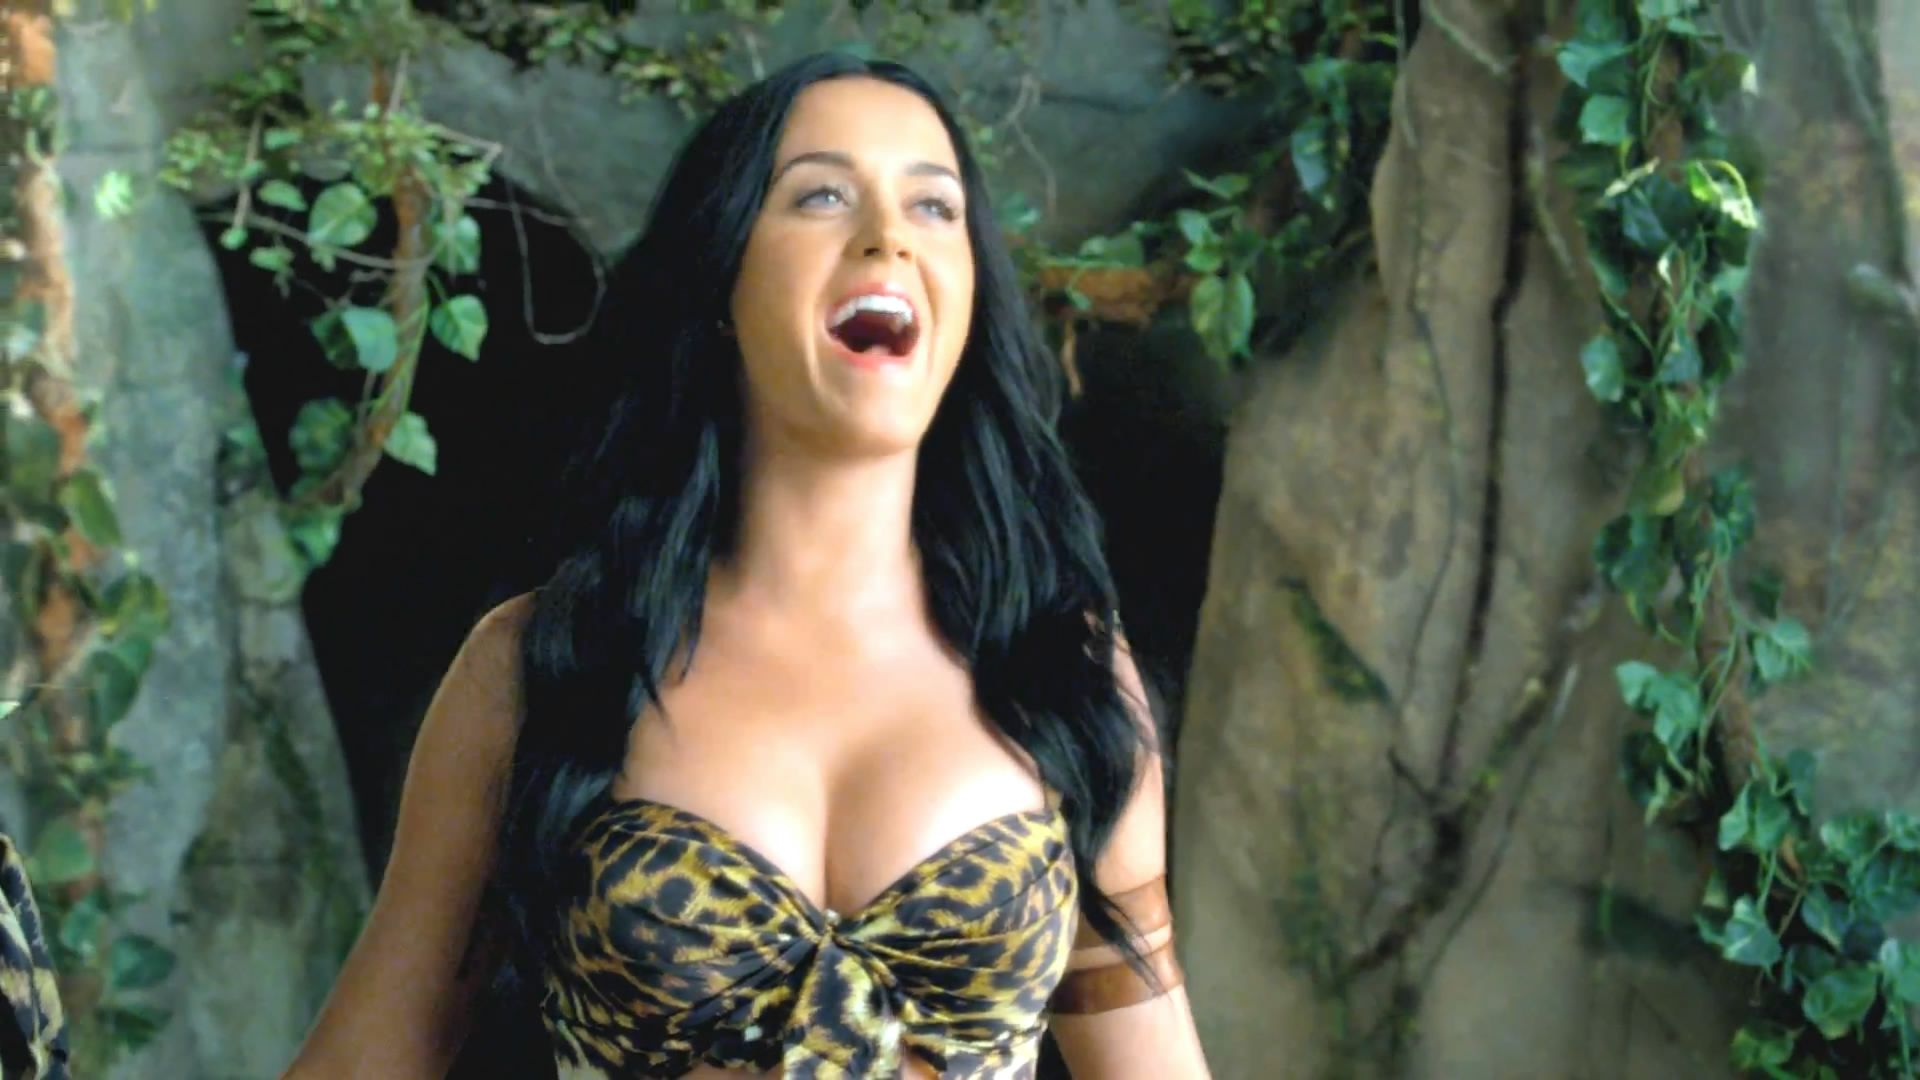 Katy perry wallpapers roar high quality resolution cute wallpapers katy perry wallpapers roar high quality resolution voltagebd Gallery